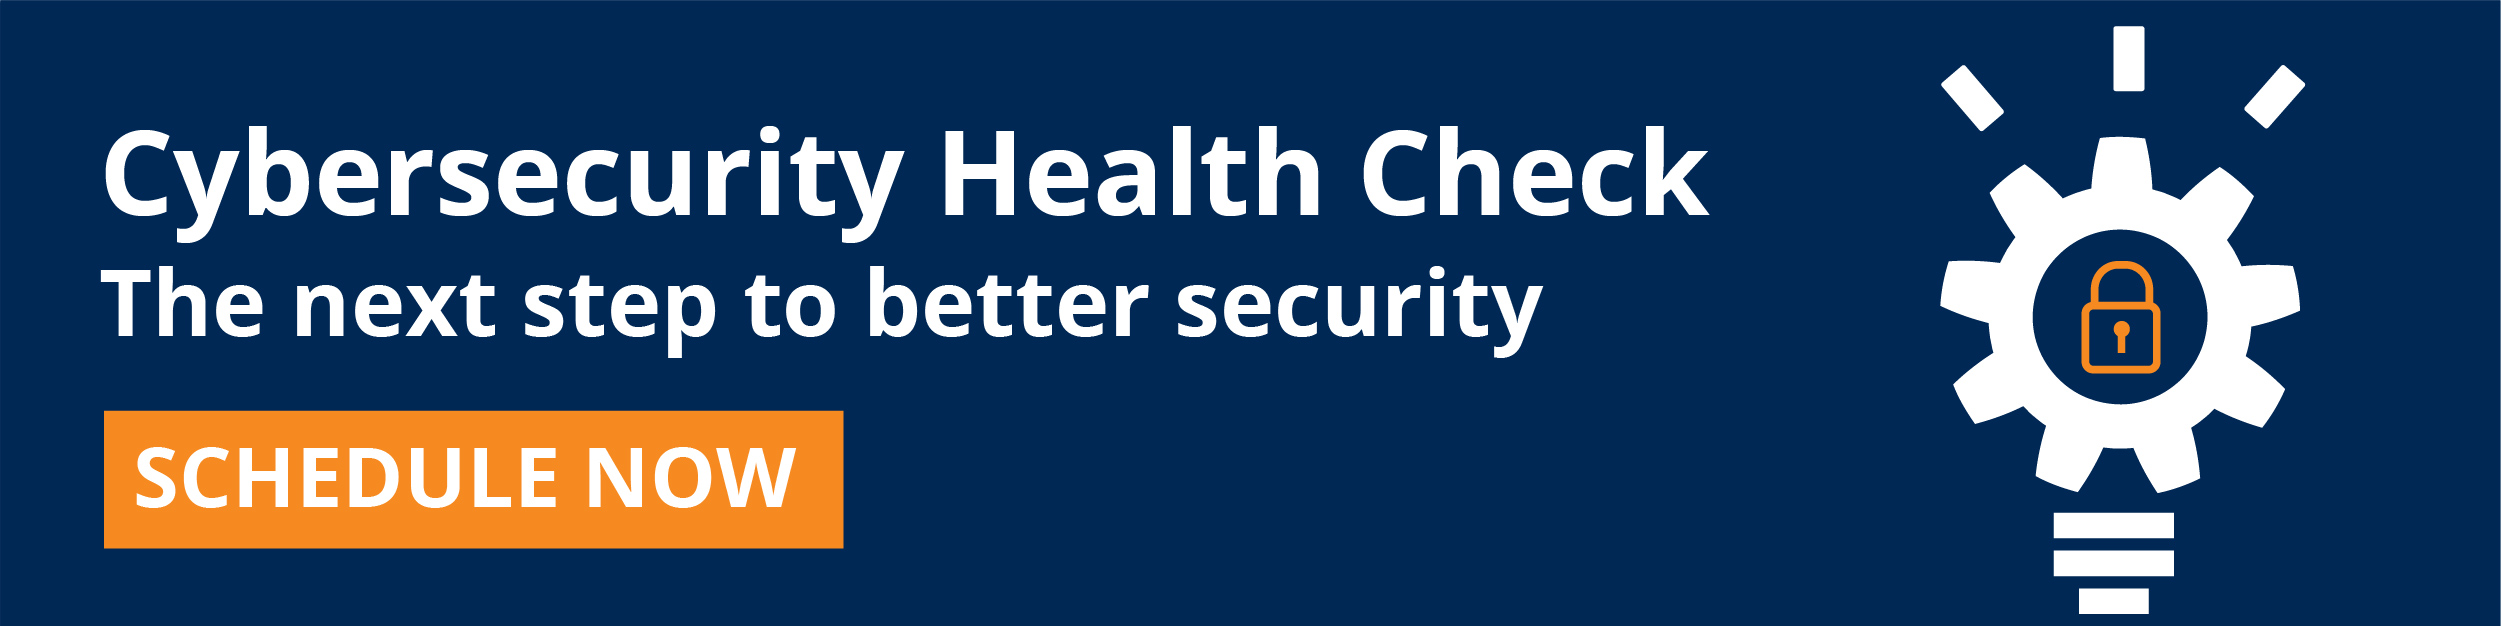 Cybersecurity Health Check